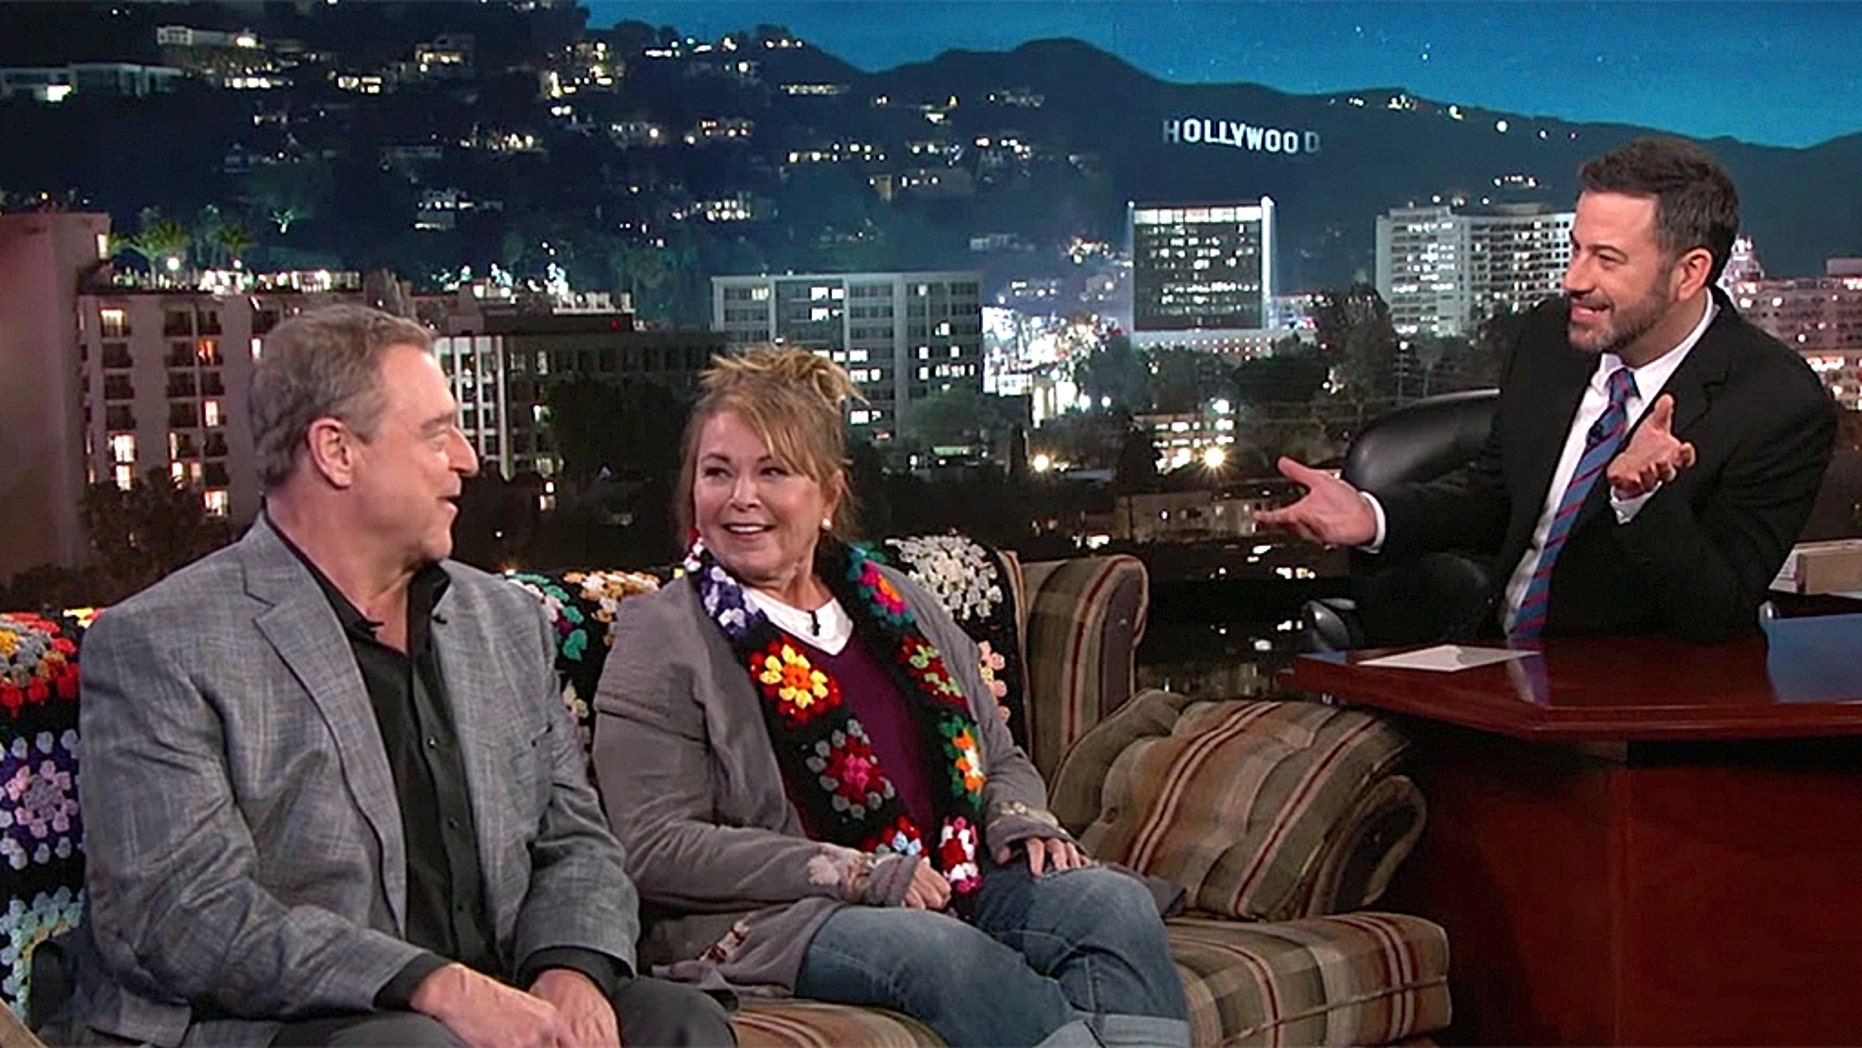 Jimmy Kimmel shows some support for Roseanne barr on social media. Here, the host interviews Barr with John Goodman back in March about the show's ABC premiere.